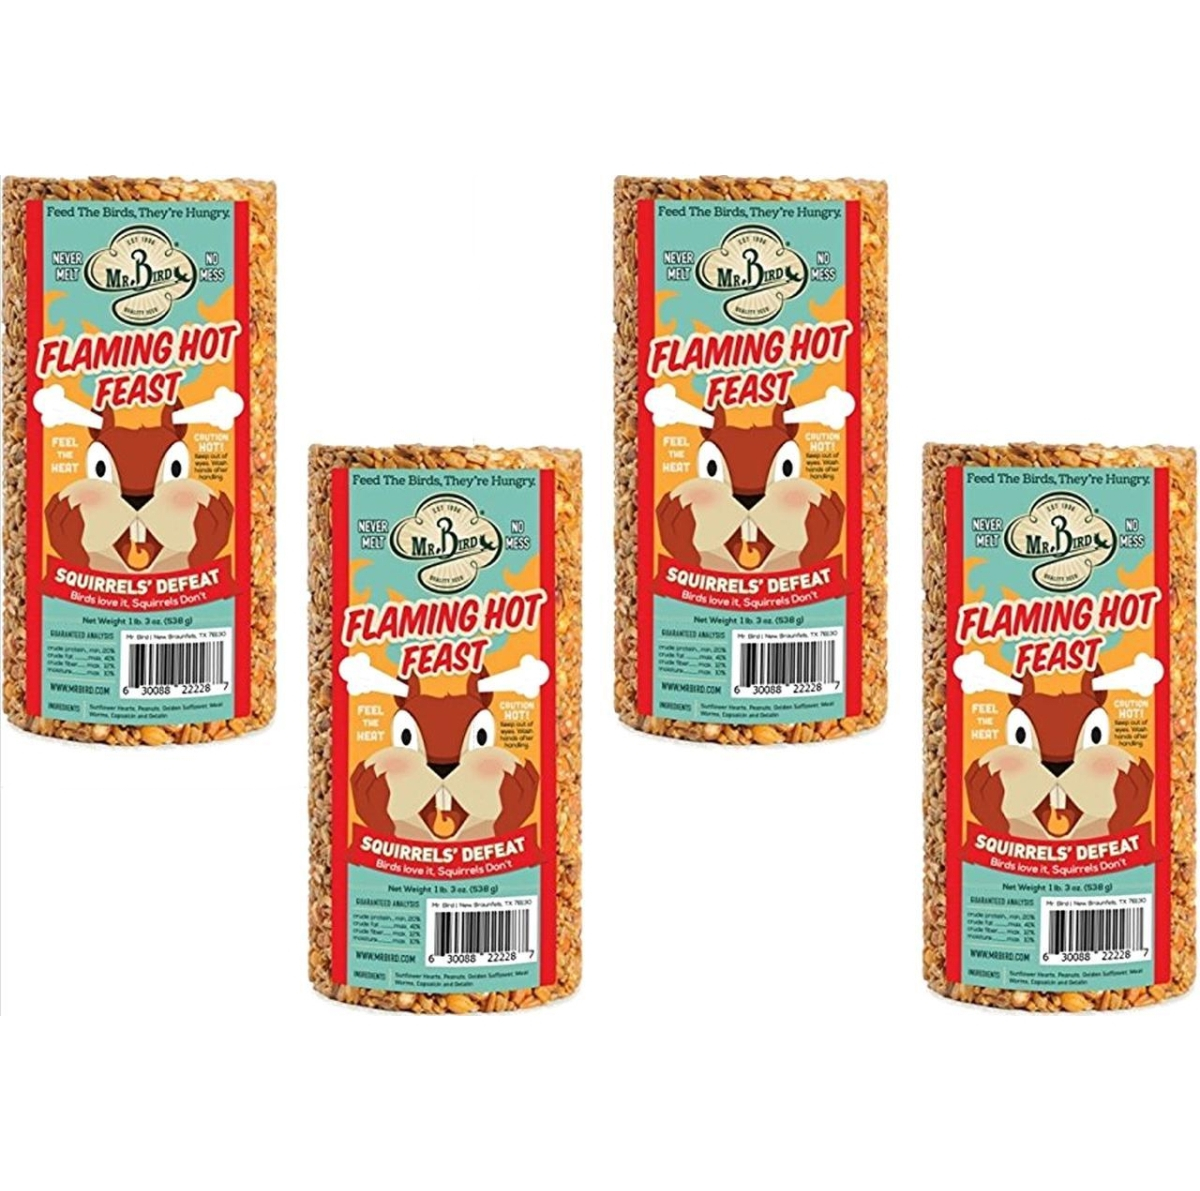 Flaming Hot Feast Seed Cylinder Small 4/Pack